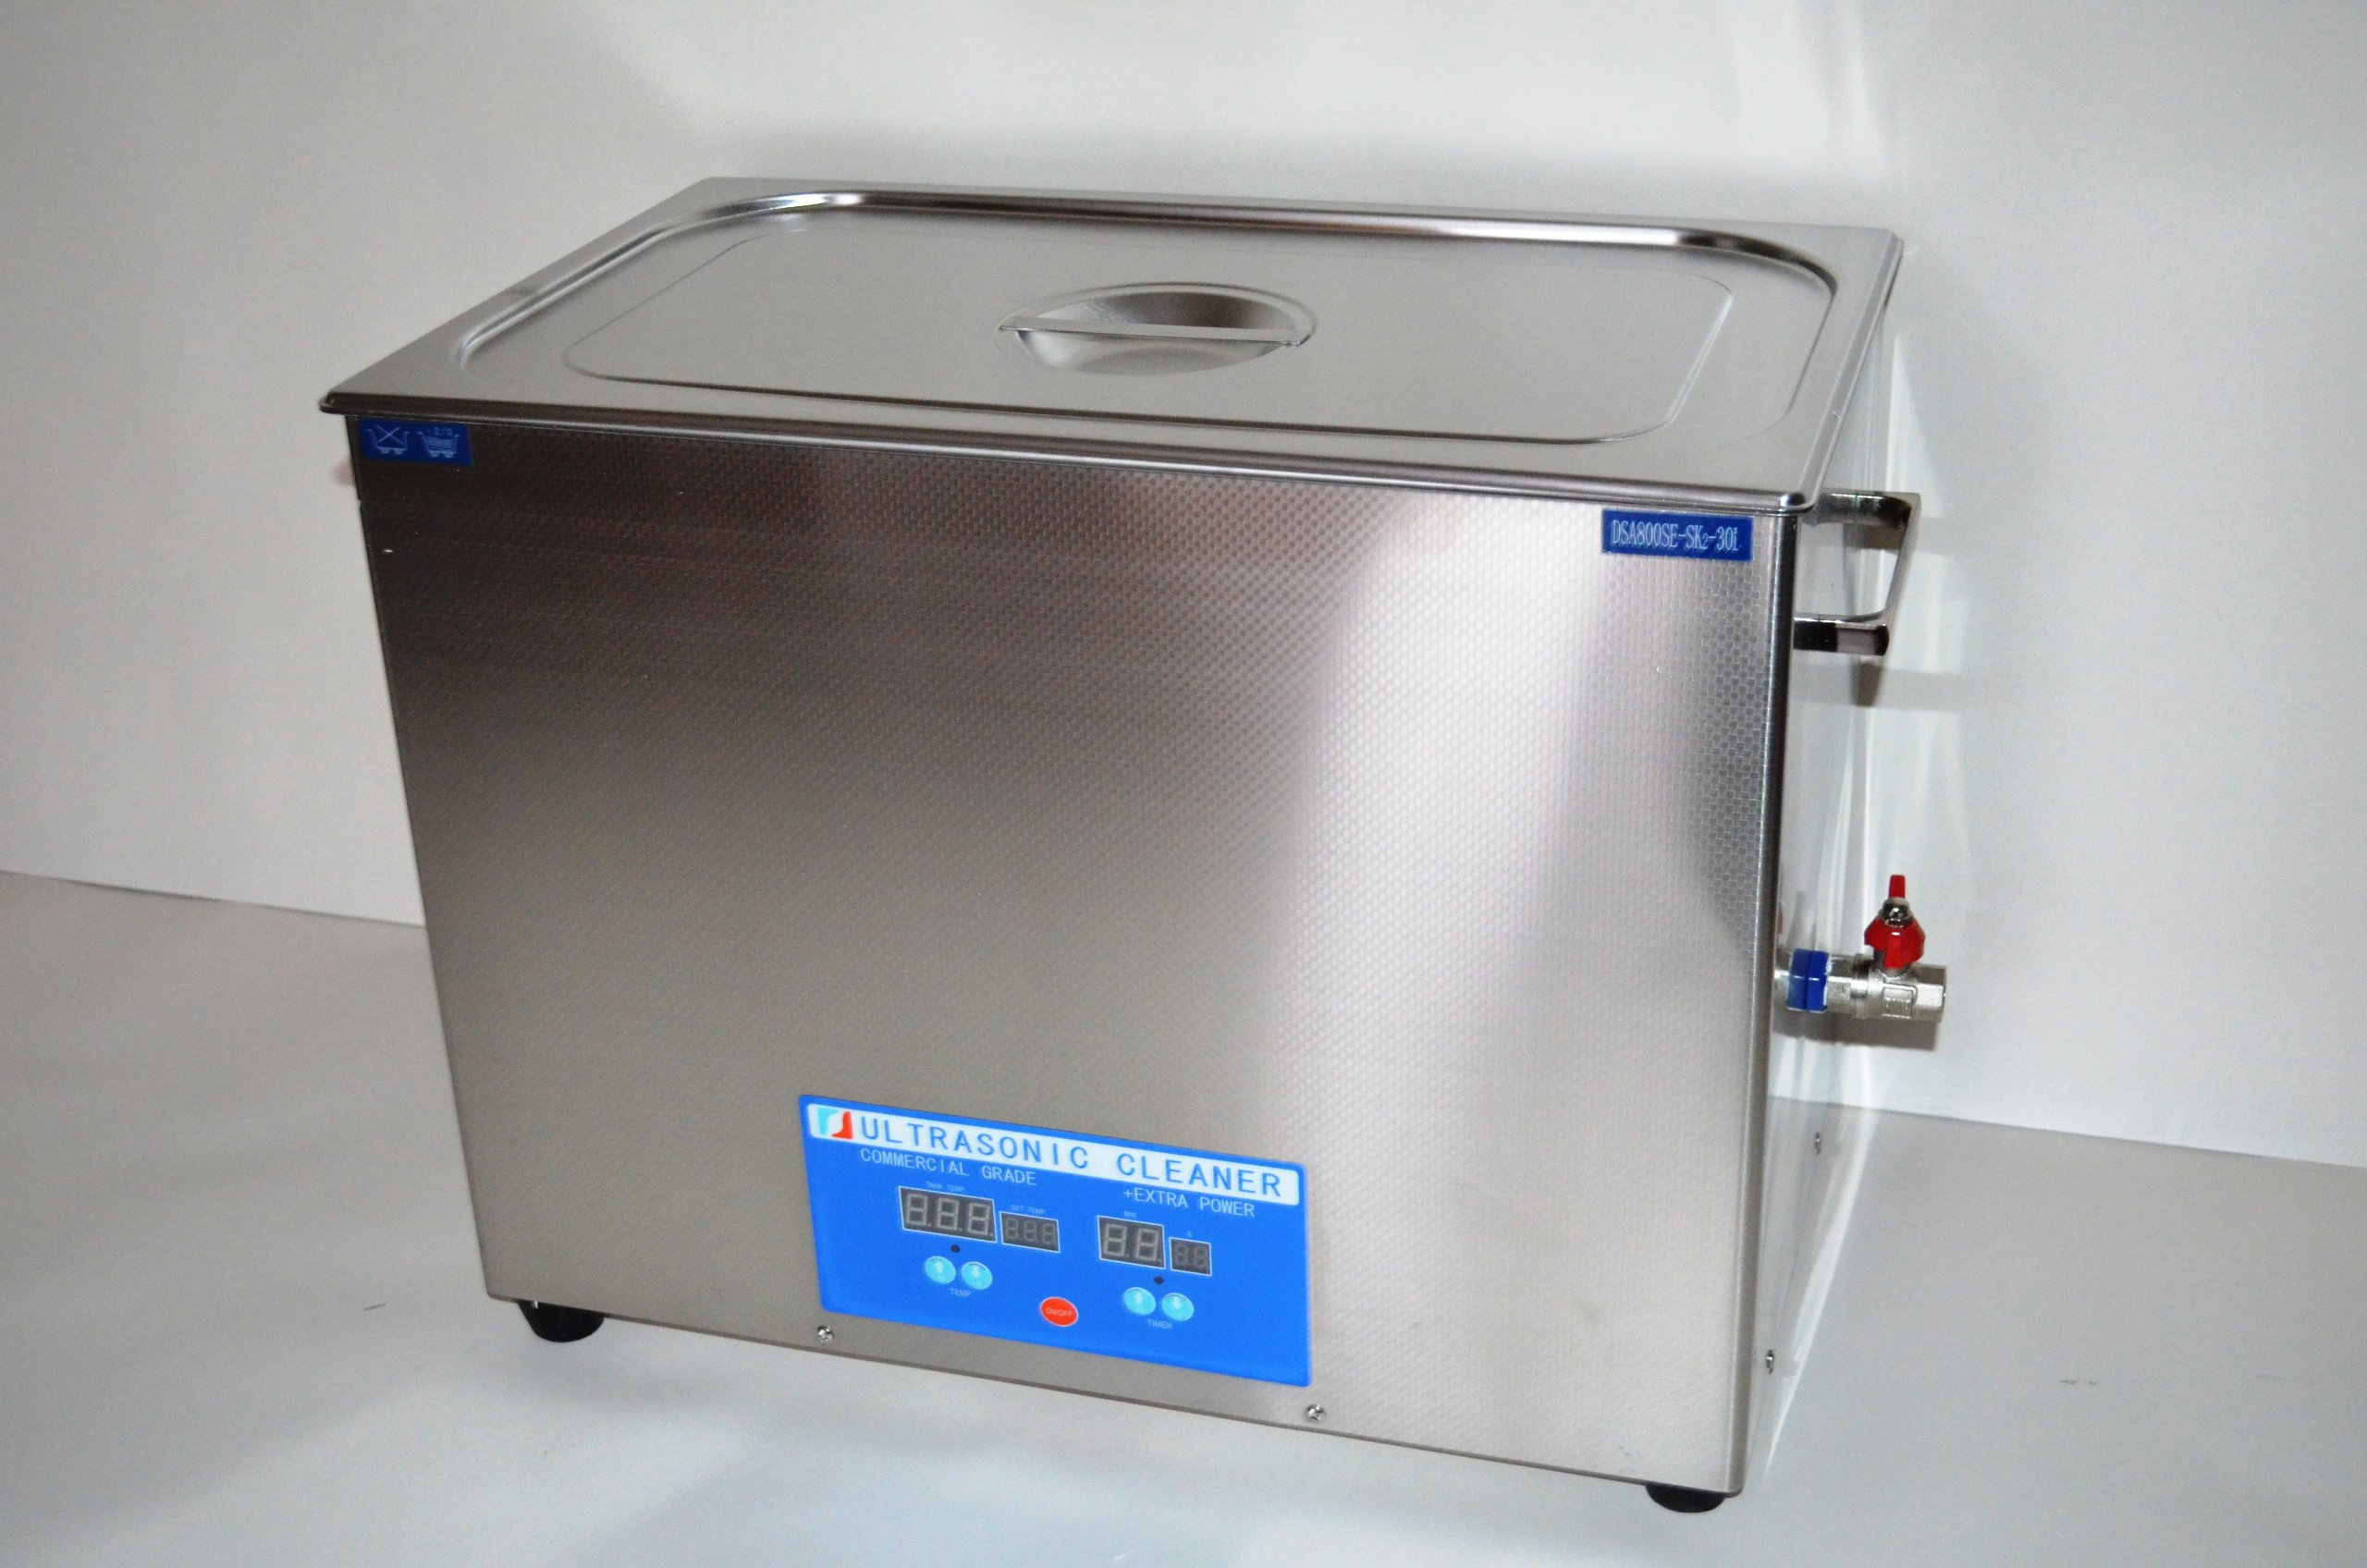 ''COMMERCIAL+ EXTRA POWER'' SERIES DSA800SE-SK2 30L (8 GAL) 1600 WATTS 40KHz DIGITAL HEATED INDUSTRIAL STAINLESS STEEL ULTRASONIC PARTS CLEANER MACHINE WITH INBOARD BASKET AND TOP COVER LID by Desen Precision Instruments Co (Image #4)